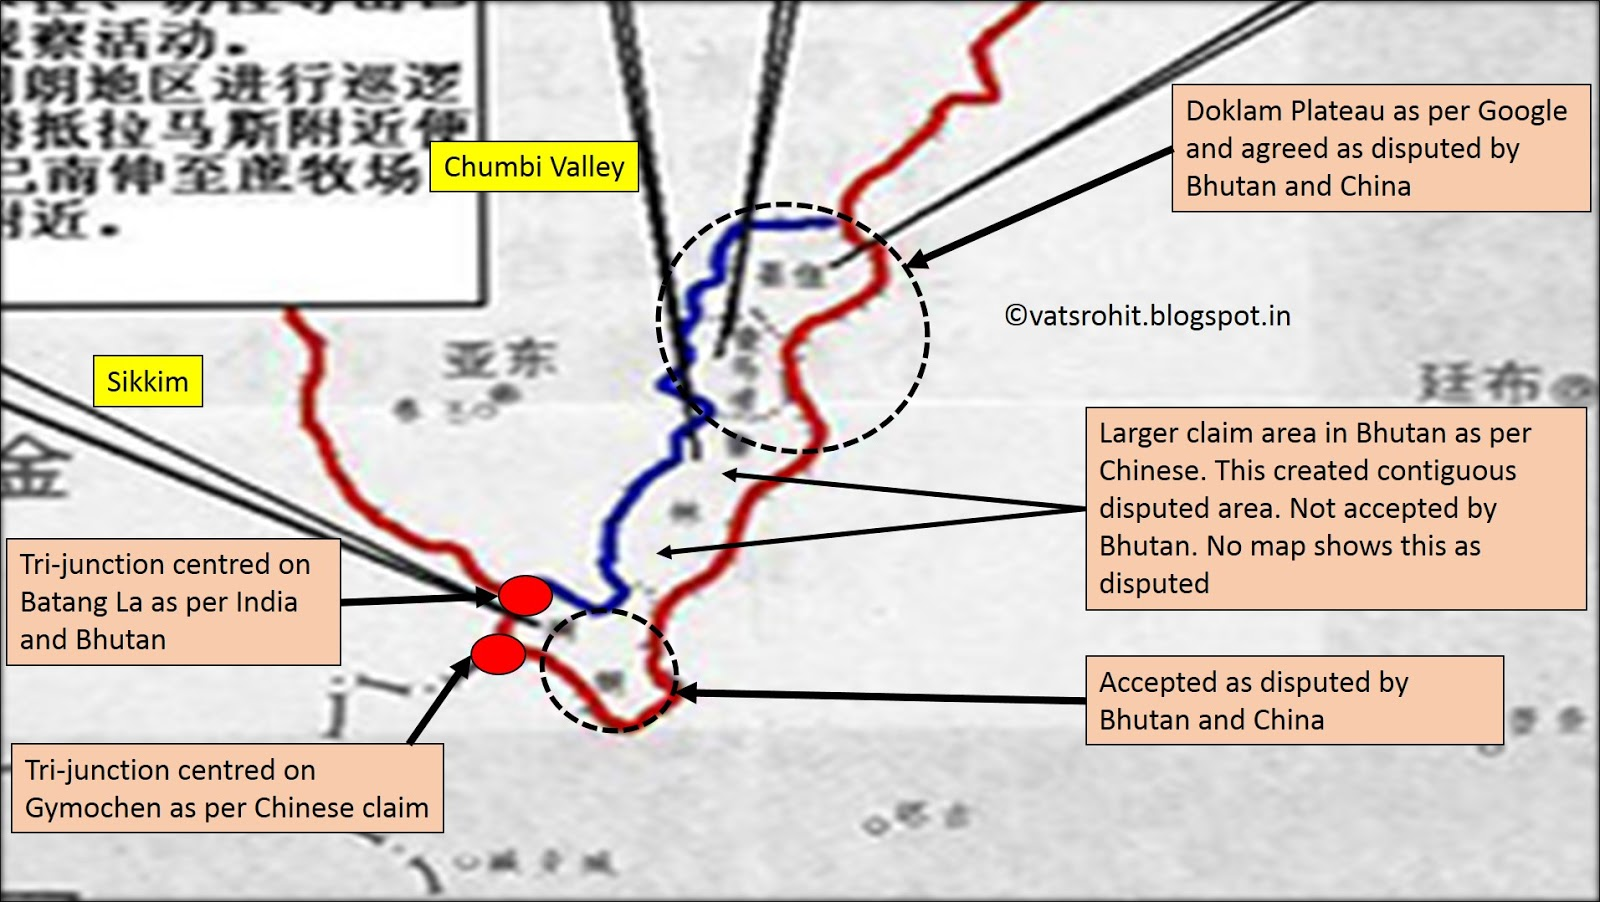 Doklam plateau india bhutan and china stand off for Chinese in the area